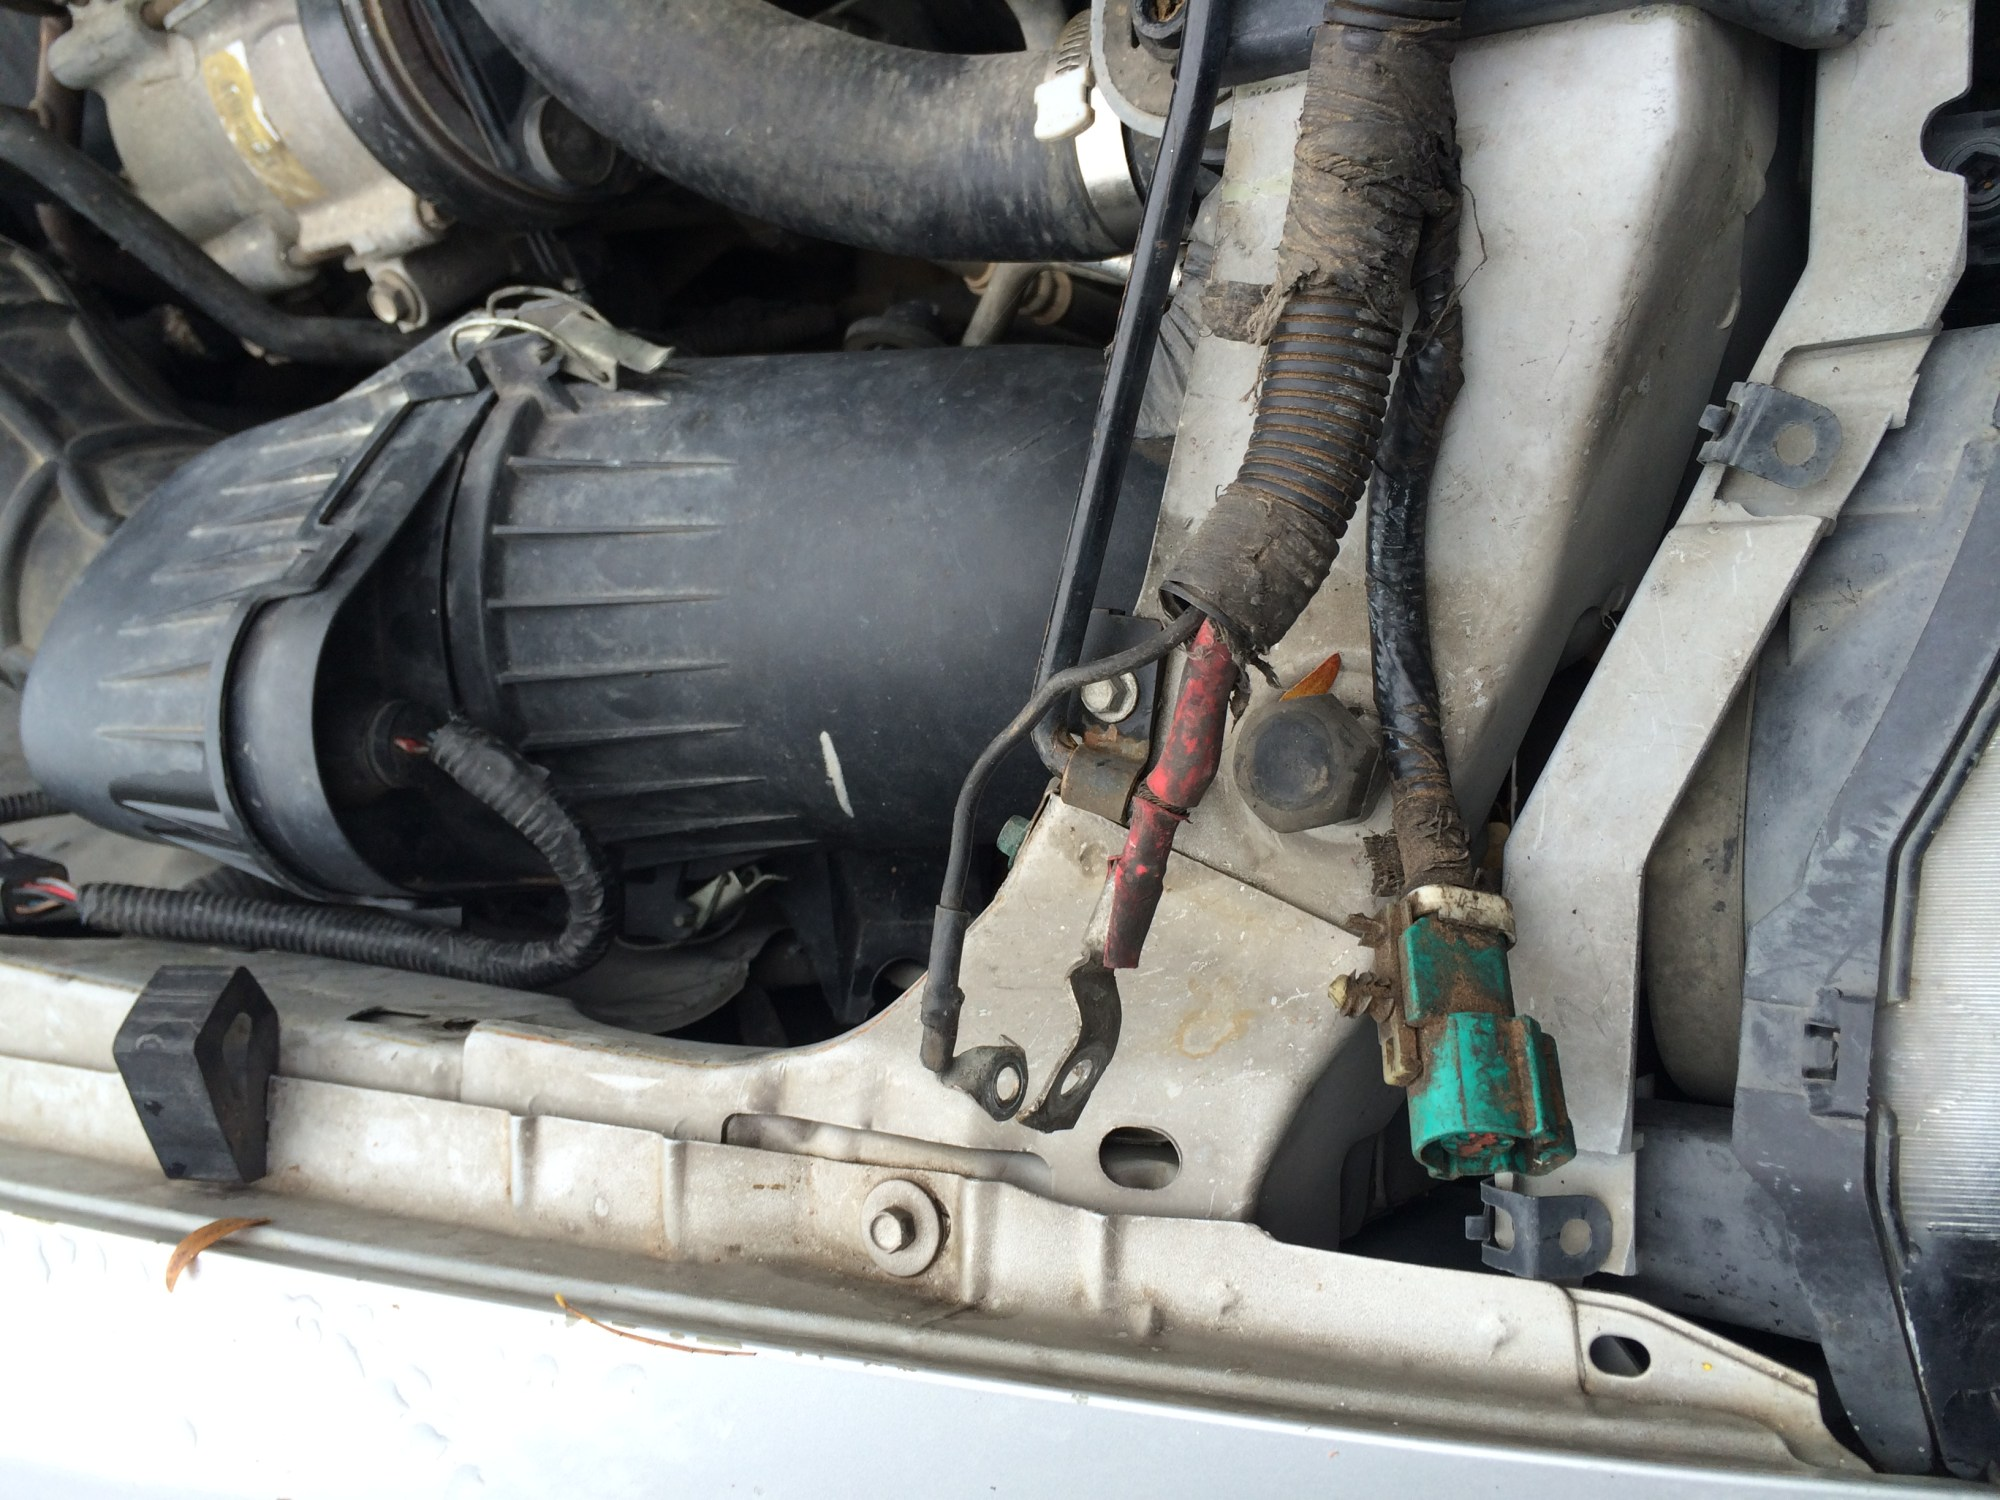 hight resolution of  01 3 8l wiring harness issues img 2480 jpg